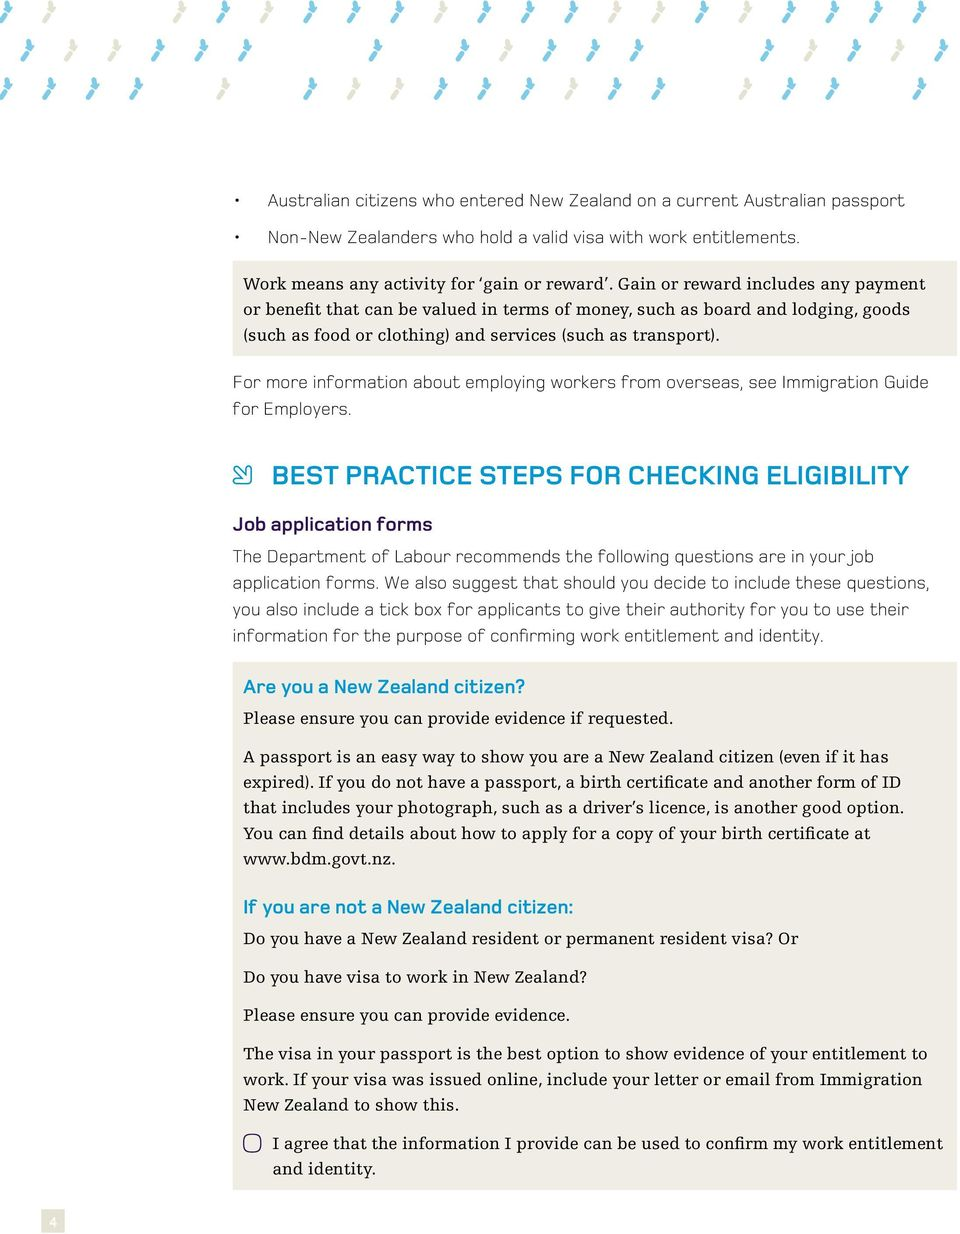 A guide to help employers check work entitlement - PDF